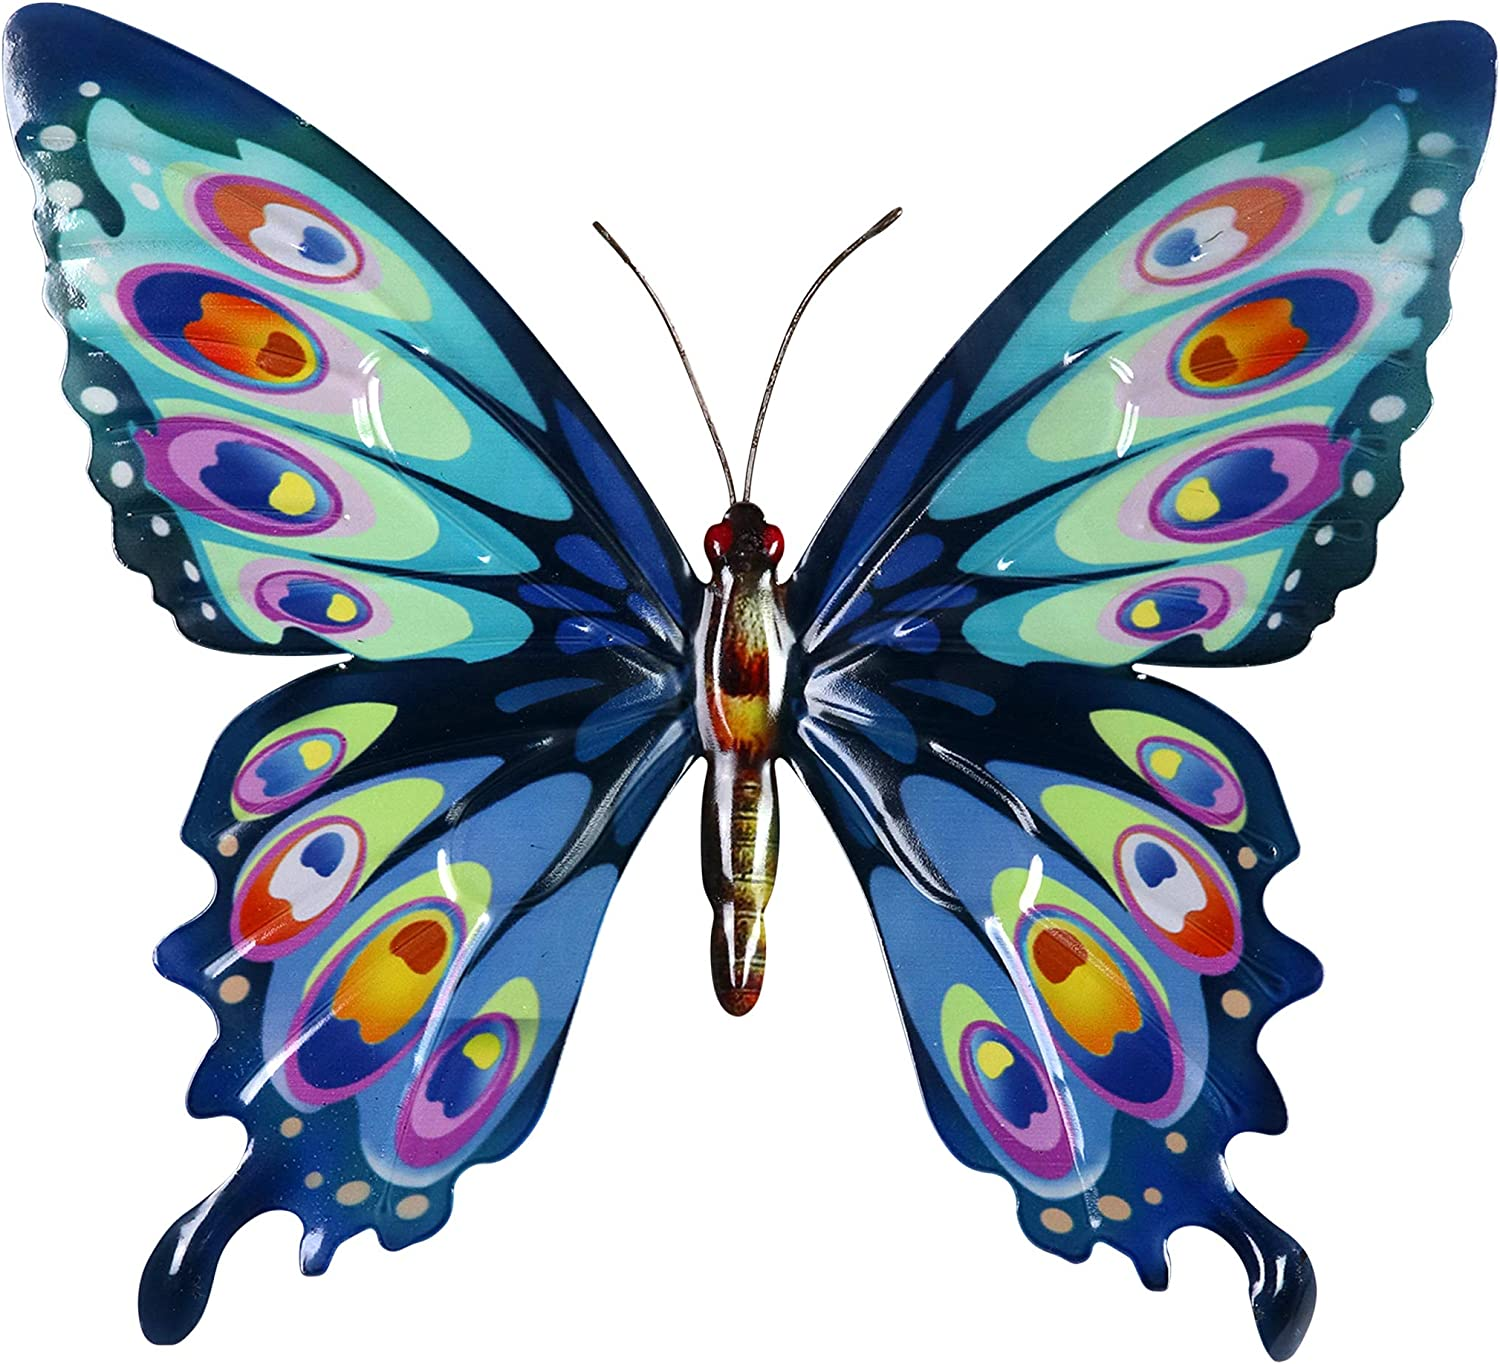 """Exhart Metal Butterfly Wall Art – Butterfly Wall Decor for Home or Garden – Hand-Painted Metal Wall Hanging – Wall Art Butterfly Décor Made from Weather-Resistant Metal – 14.5"""" L x 1"""" W x 13"""" H"""